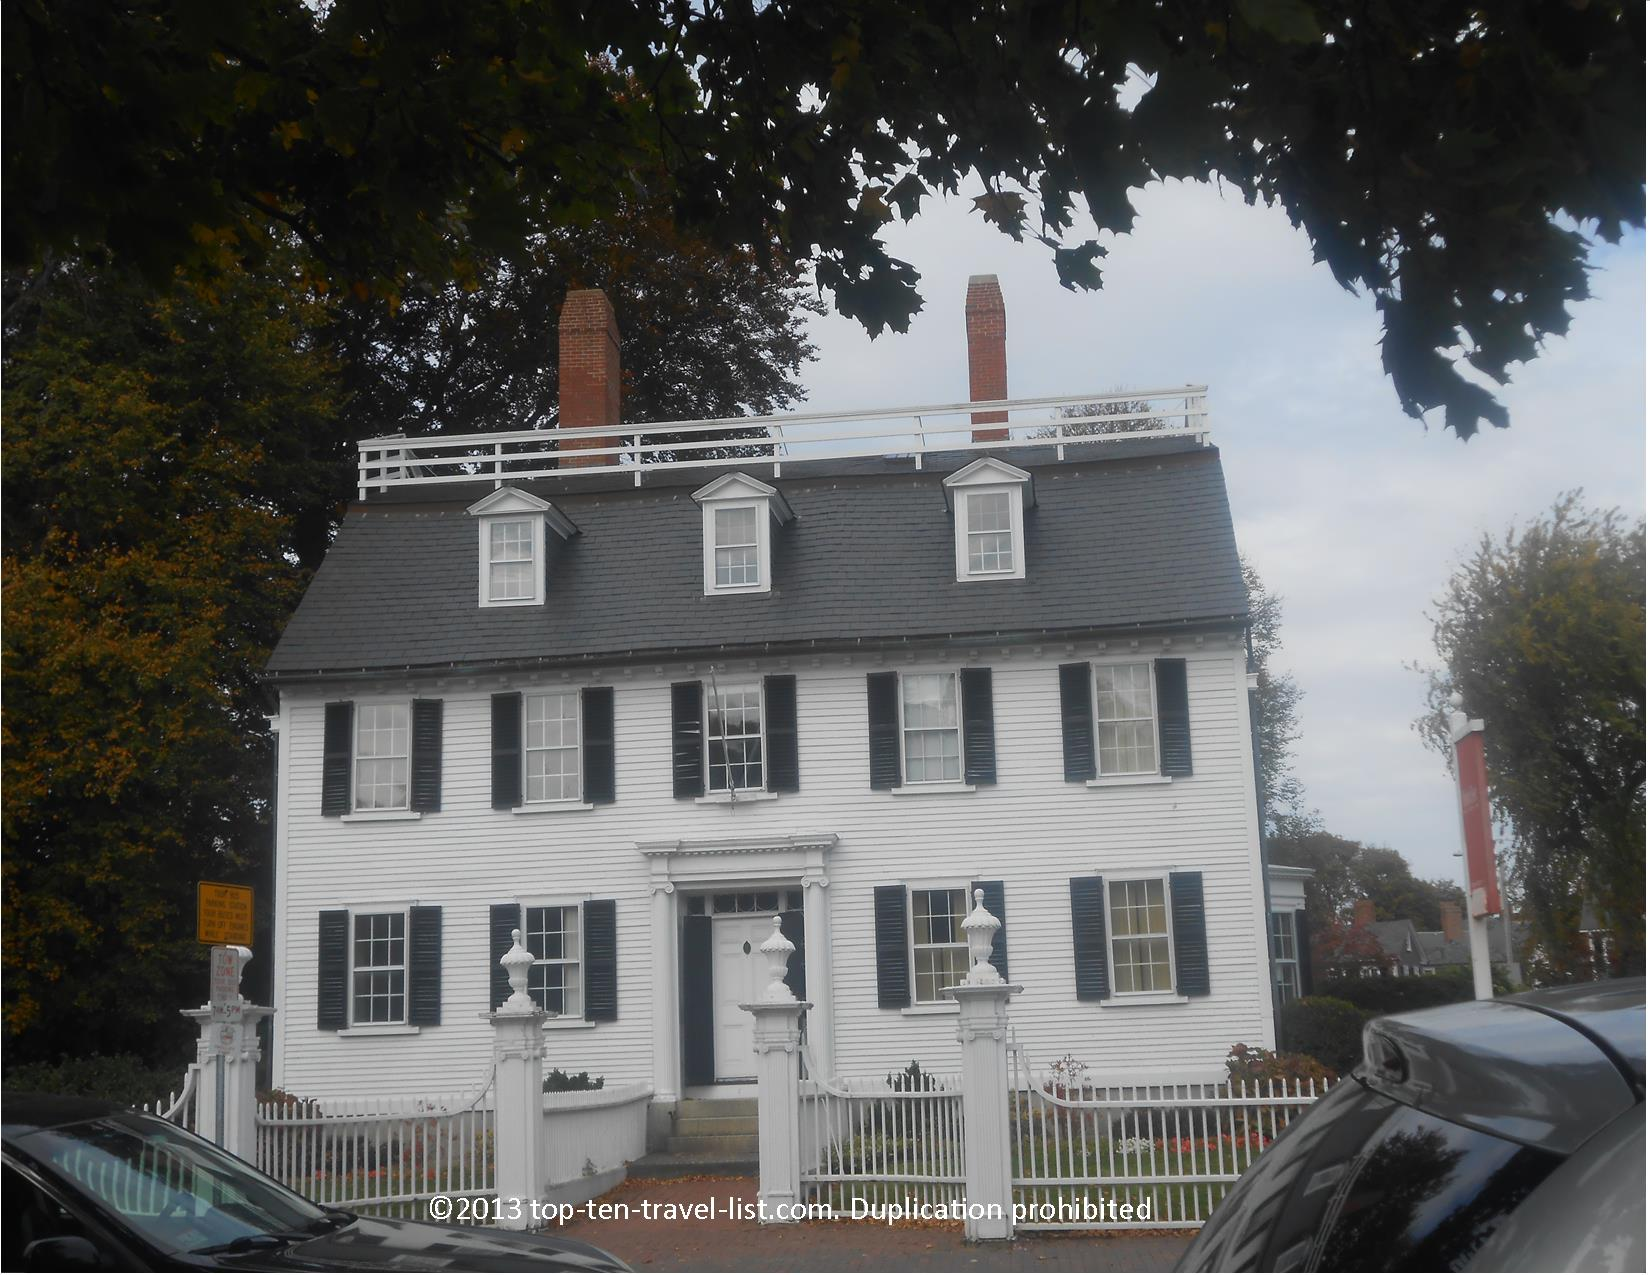 Allison's house from Hocus Pocus, located in Salem, Massachusetts